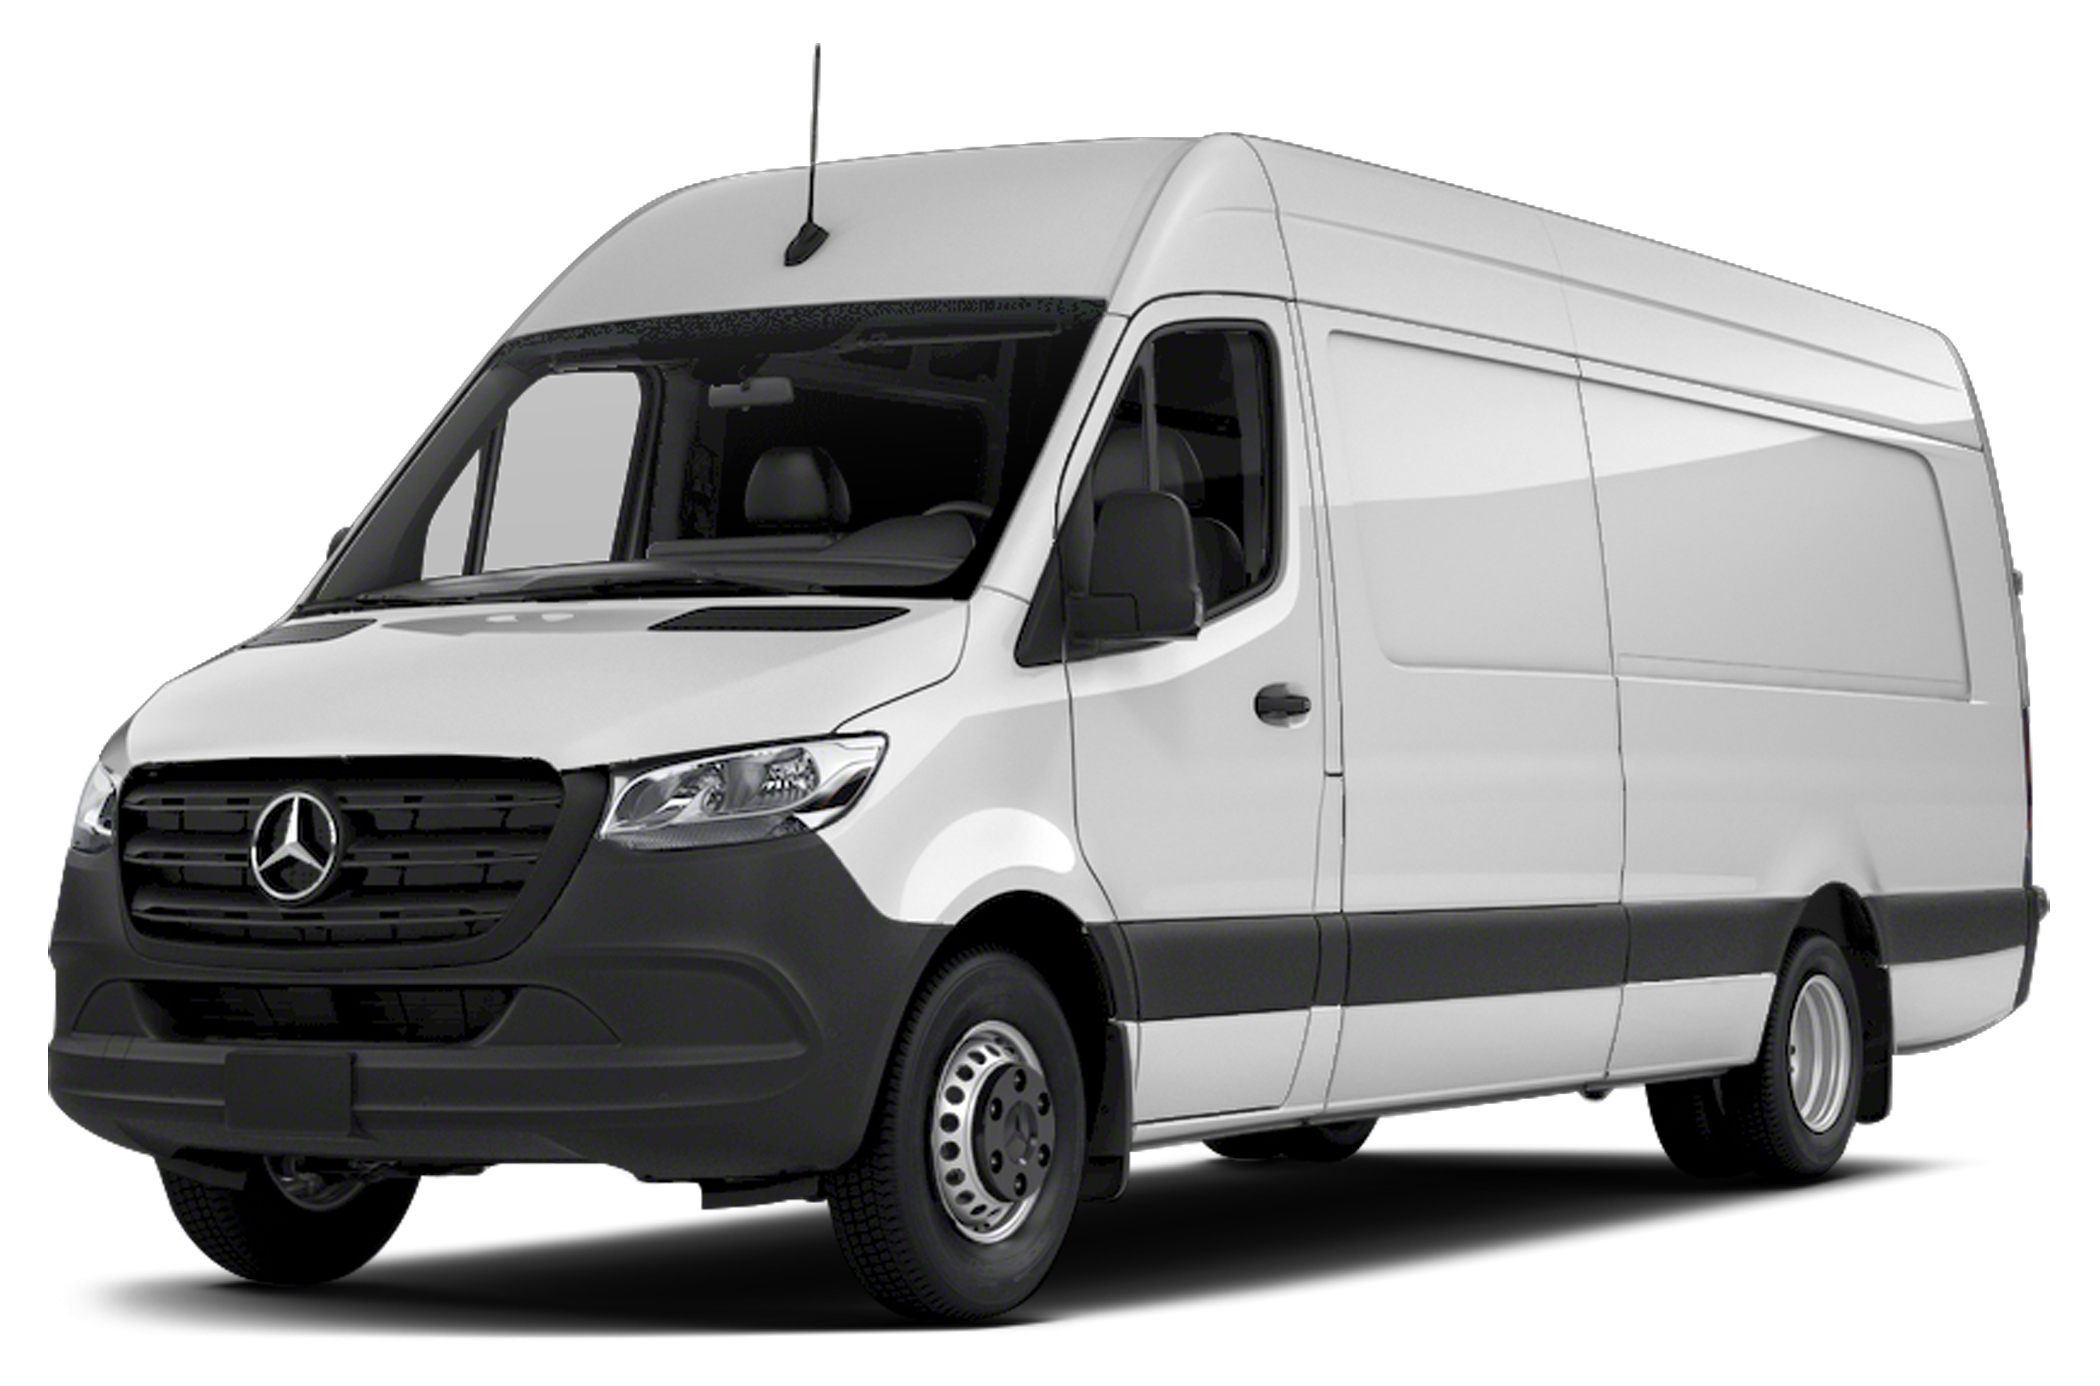 2020 Mercedes Benz Sprinter 3500 High Roof V6 Sprinter 3500 Extended Cargo Van 170 In Wb Specs And Prices